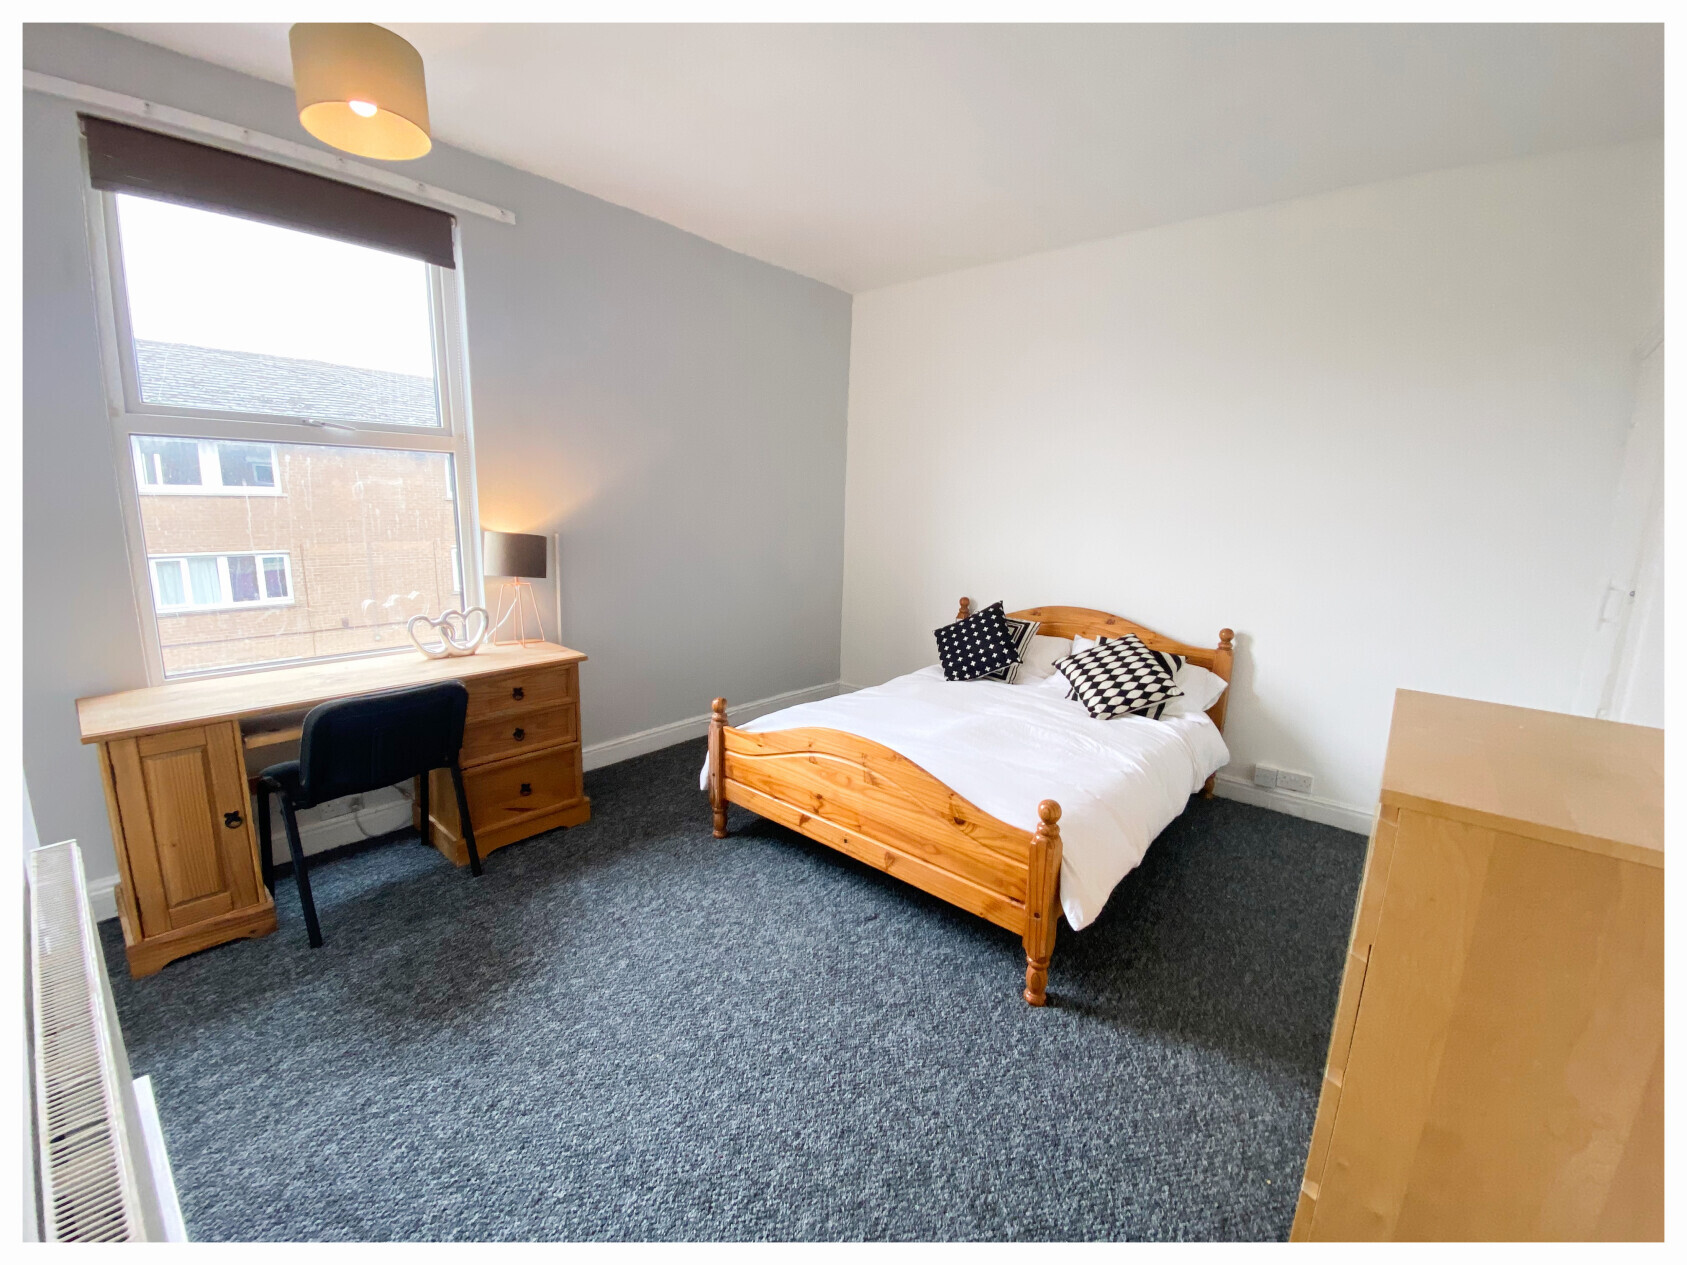 4 bedroom student house in Crookesmoor, Sheffield